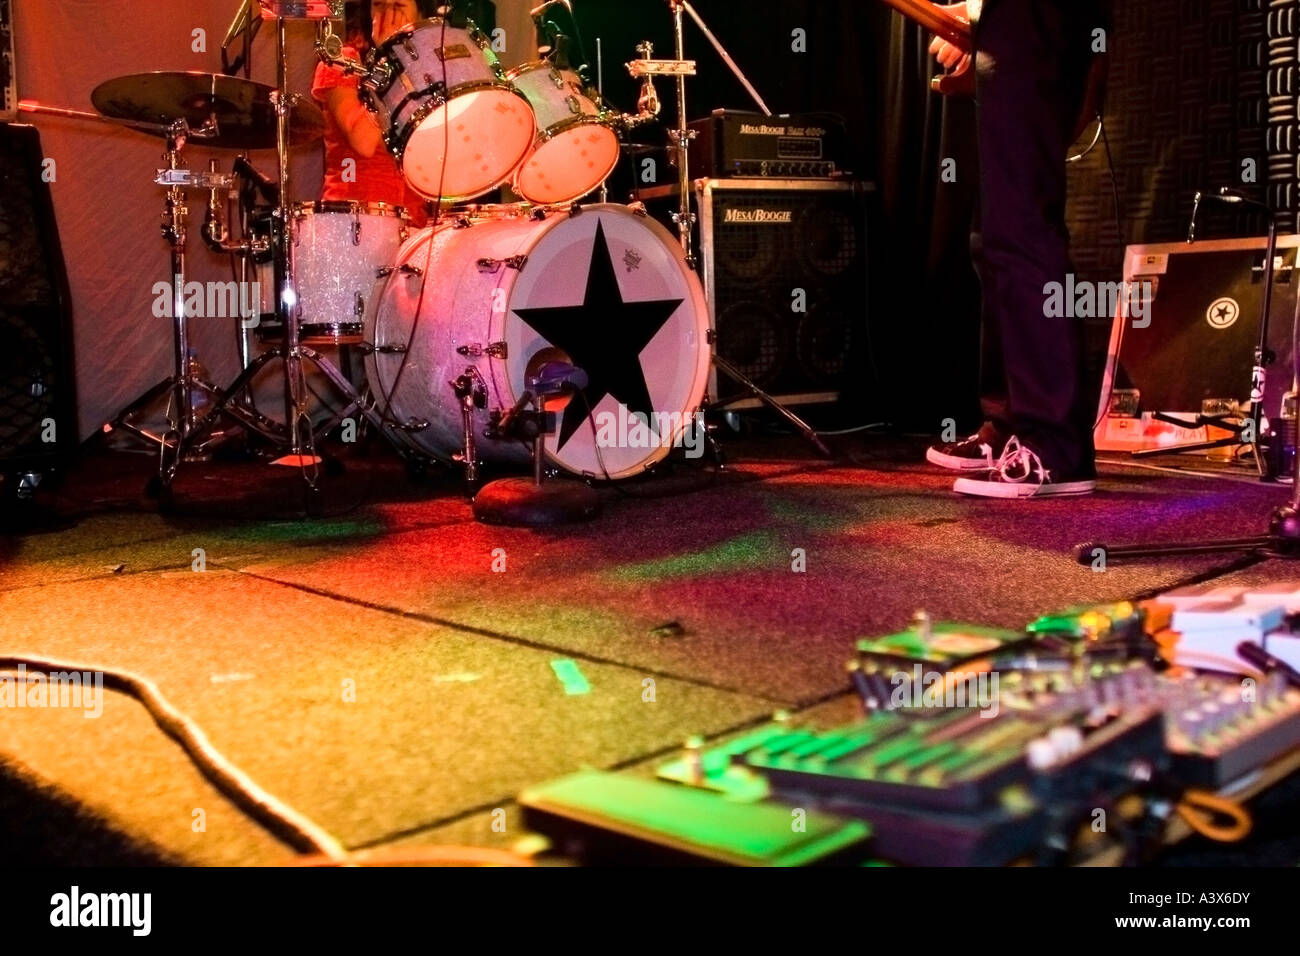 Rock And Roll Drum Kit On Stage With Guitar Effects Pedals In The Foreground